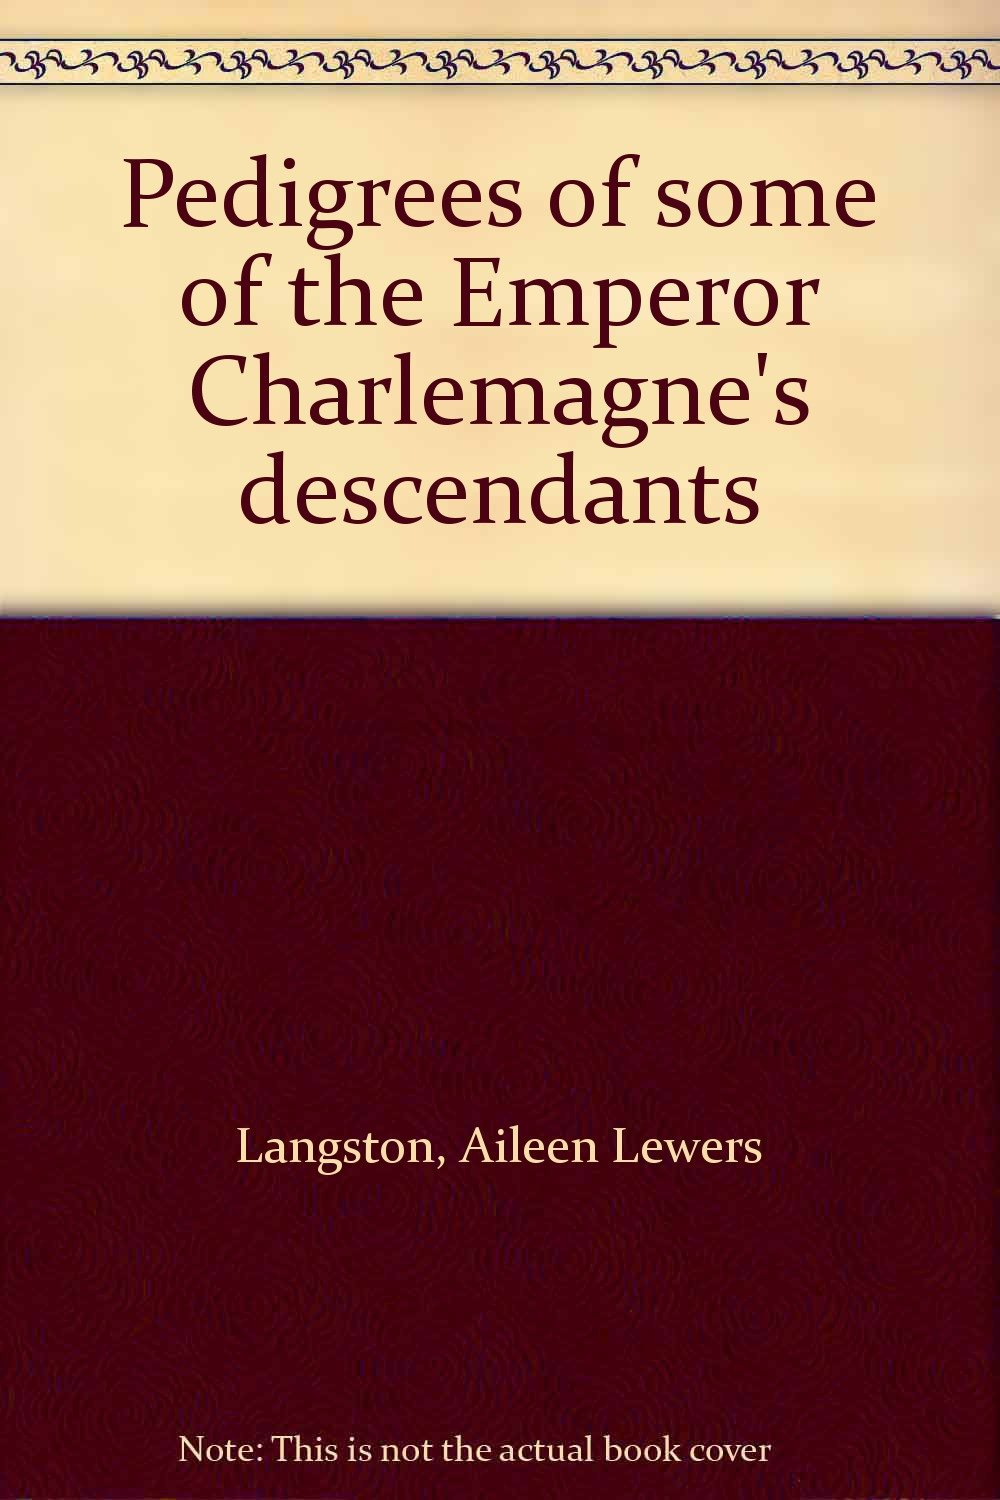 Pedigrees of some of the Emperor Charlemagne's descendants: Aileen Lewers  Langston: Amazon.com: Books